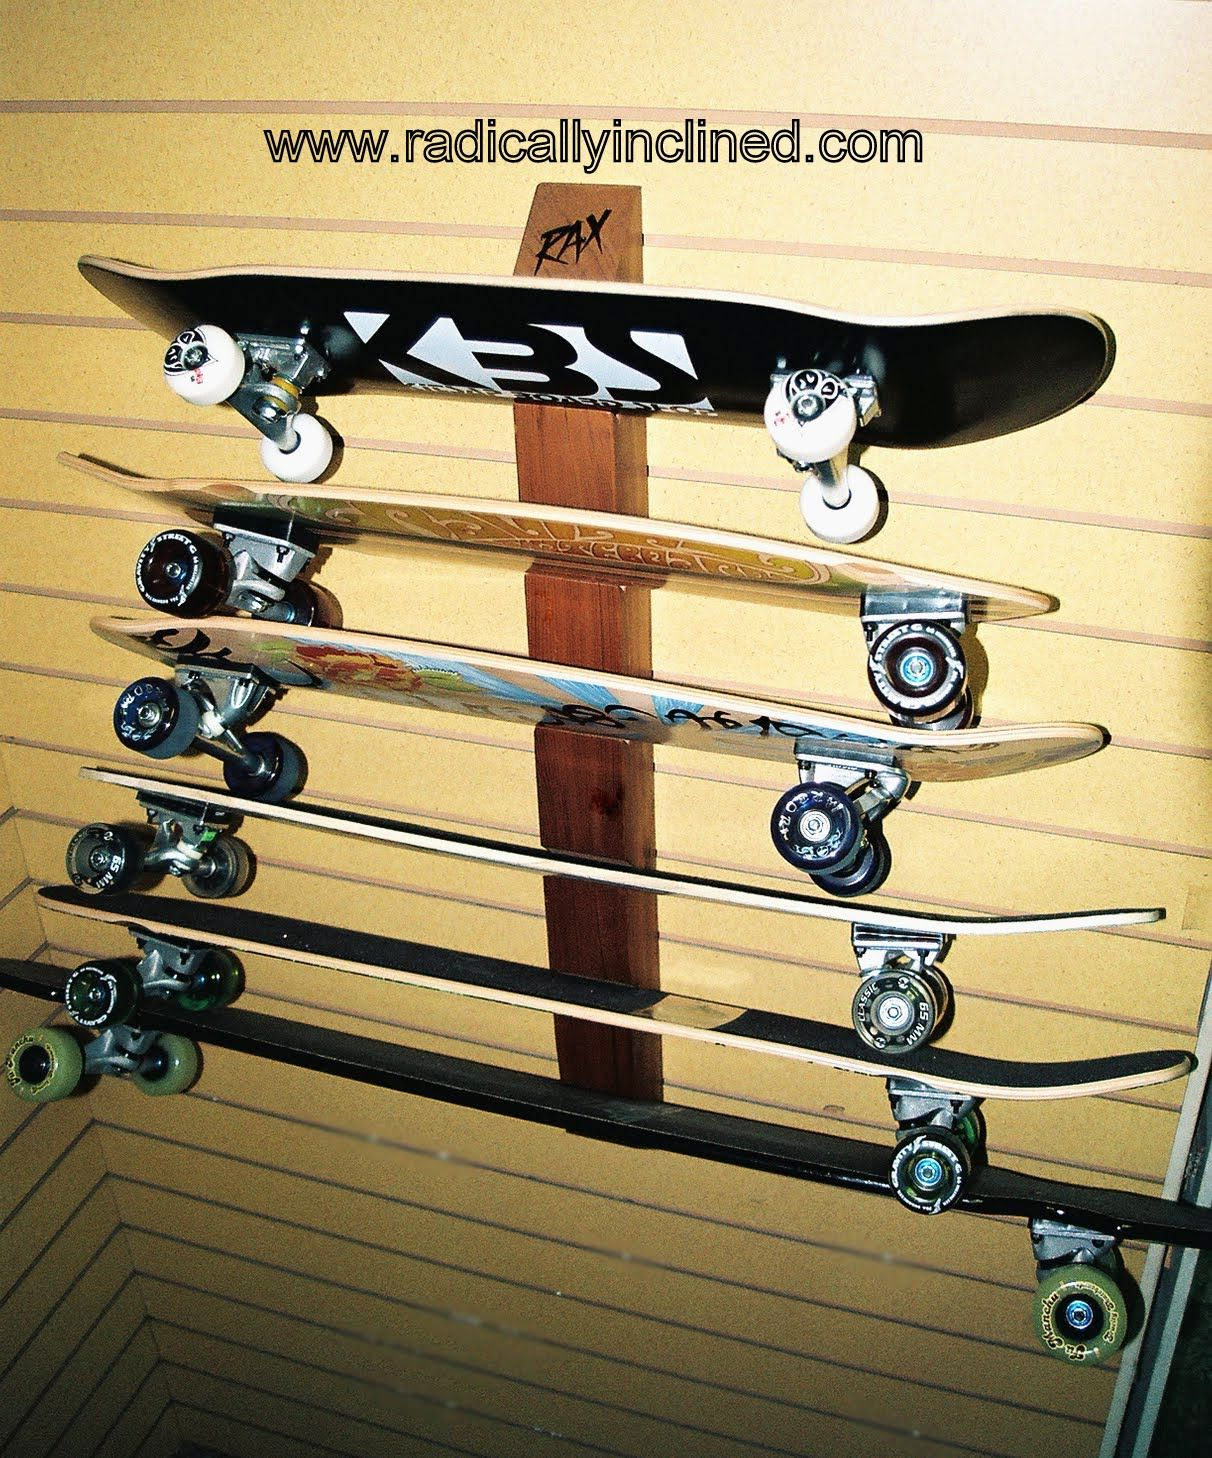 Radical new way to store your skate decks. Skateboards to longboards ...